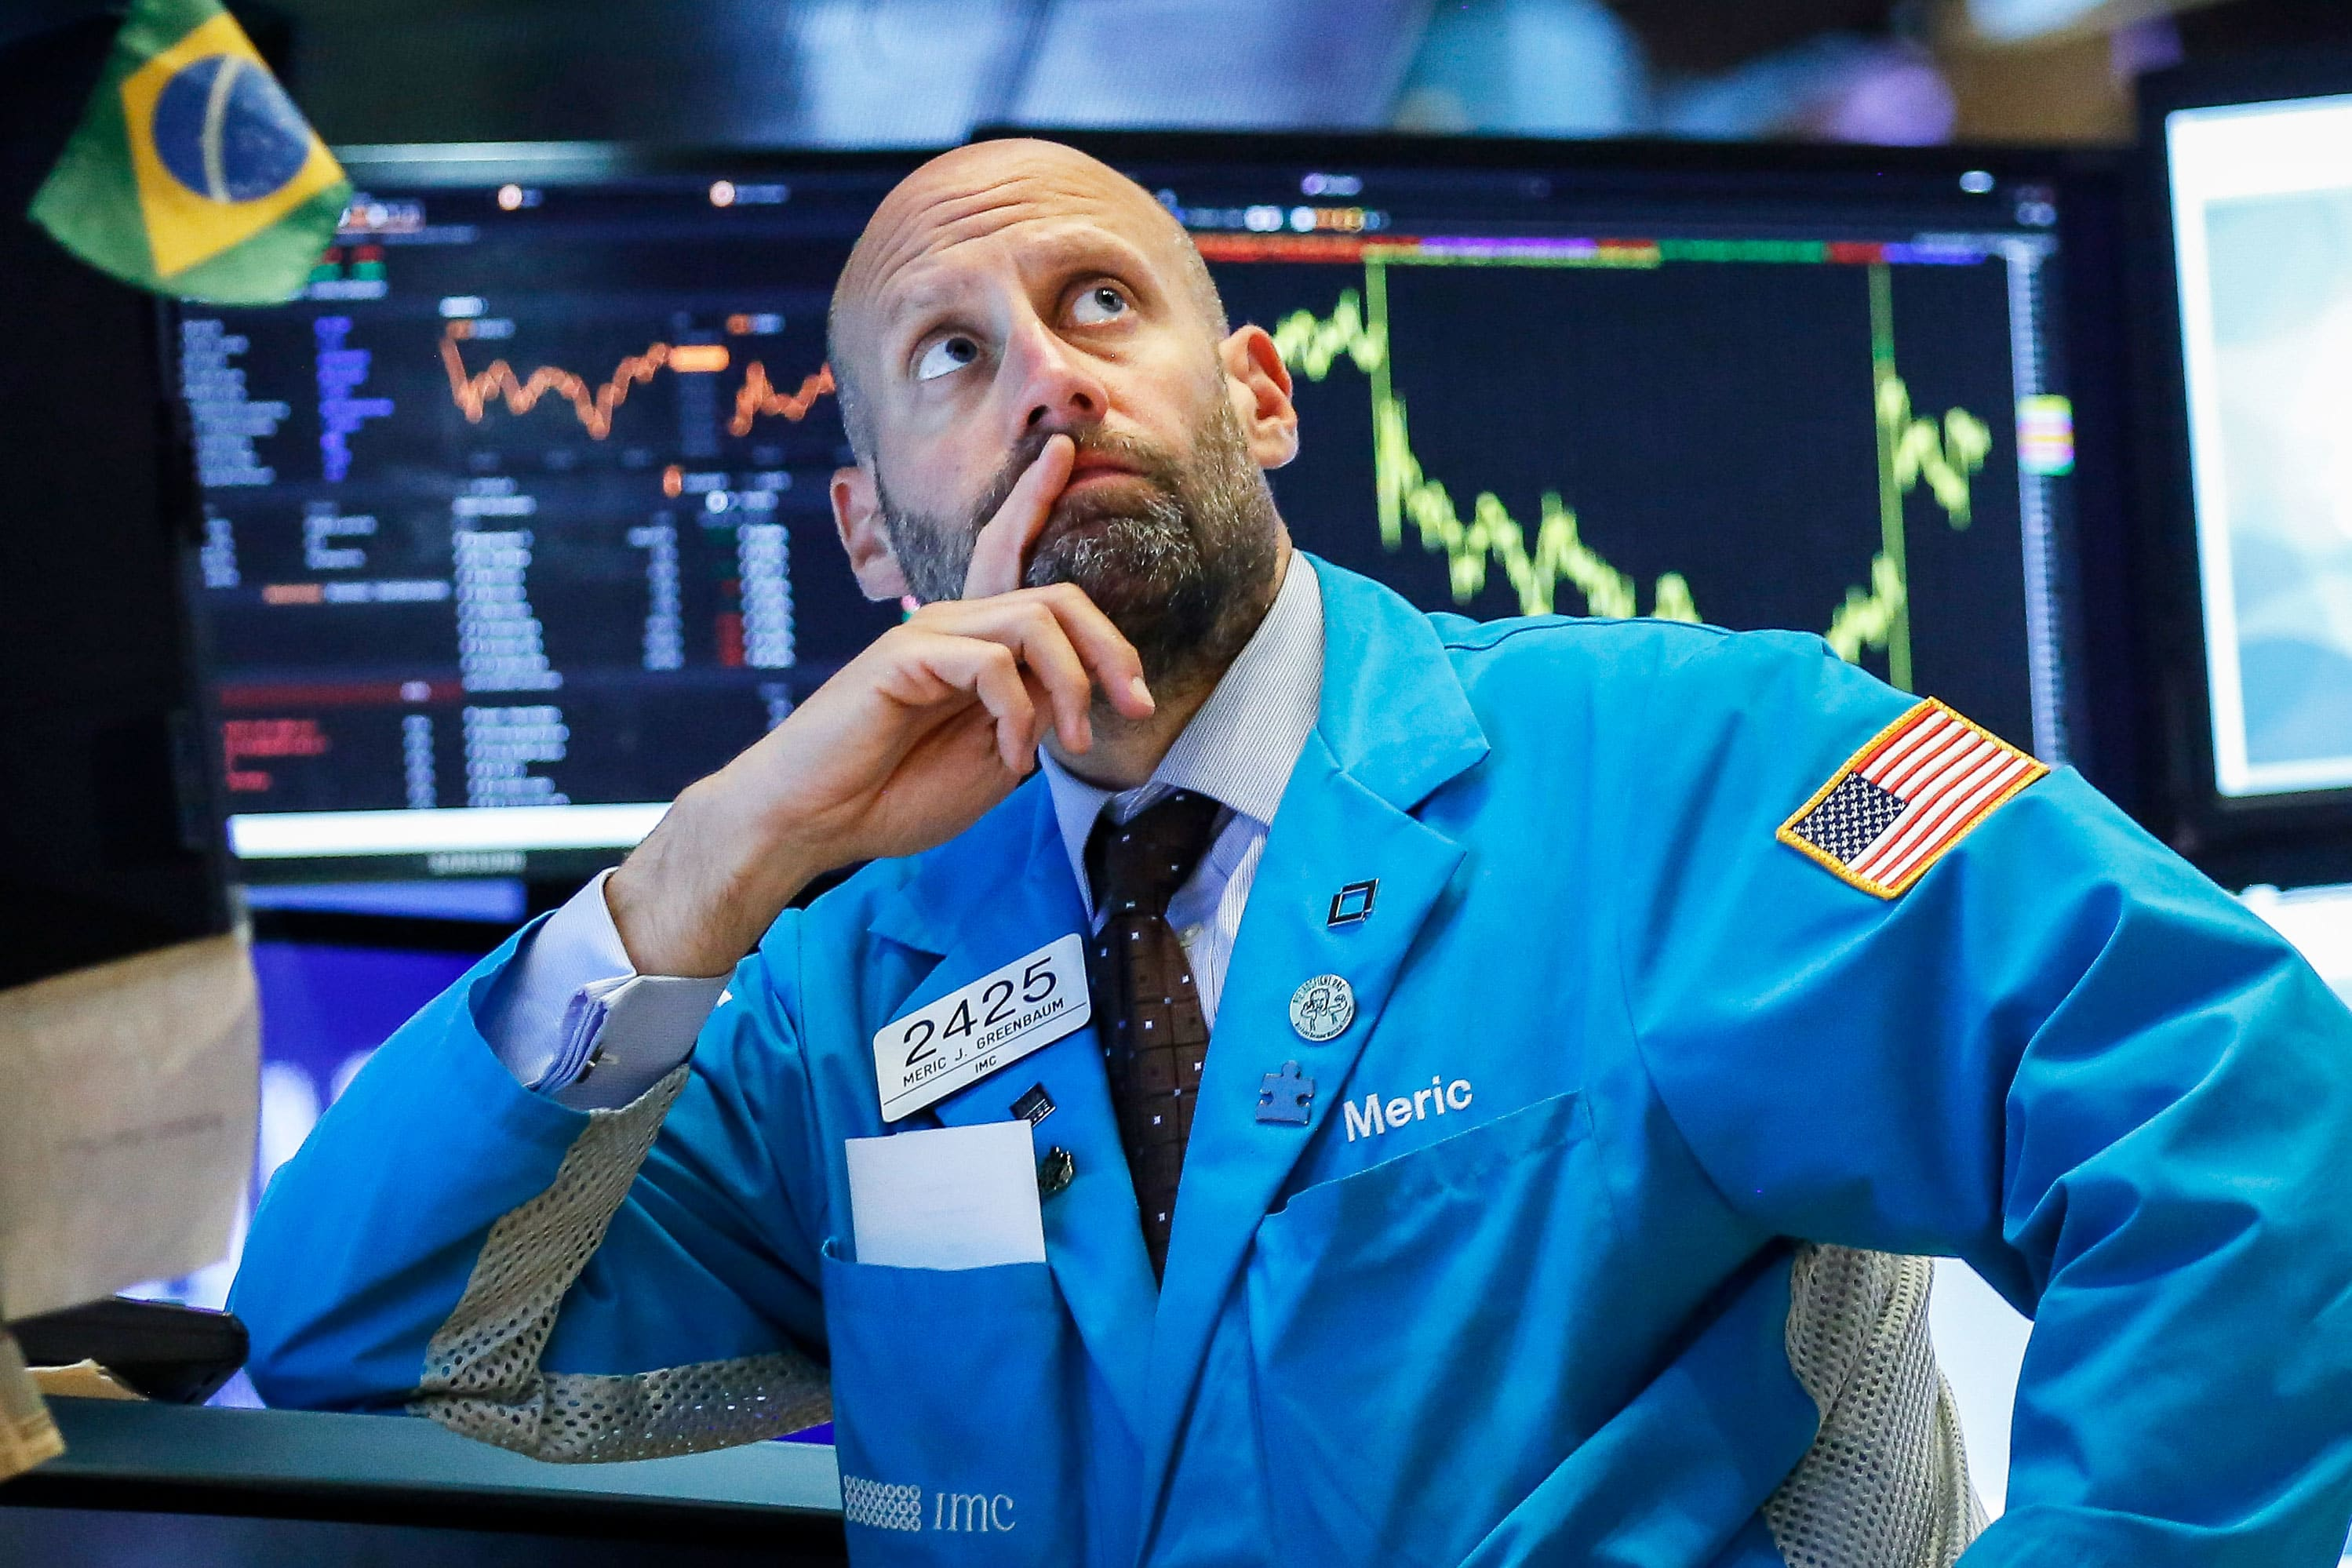 Stocks making the biggest moves premarket: General Mills, BlackBerry, FedEx, Micron, Walmart & more